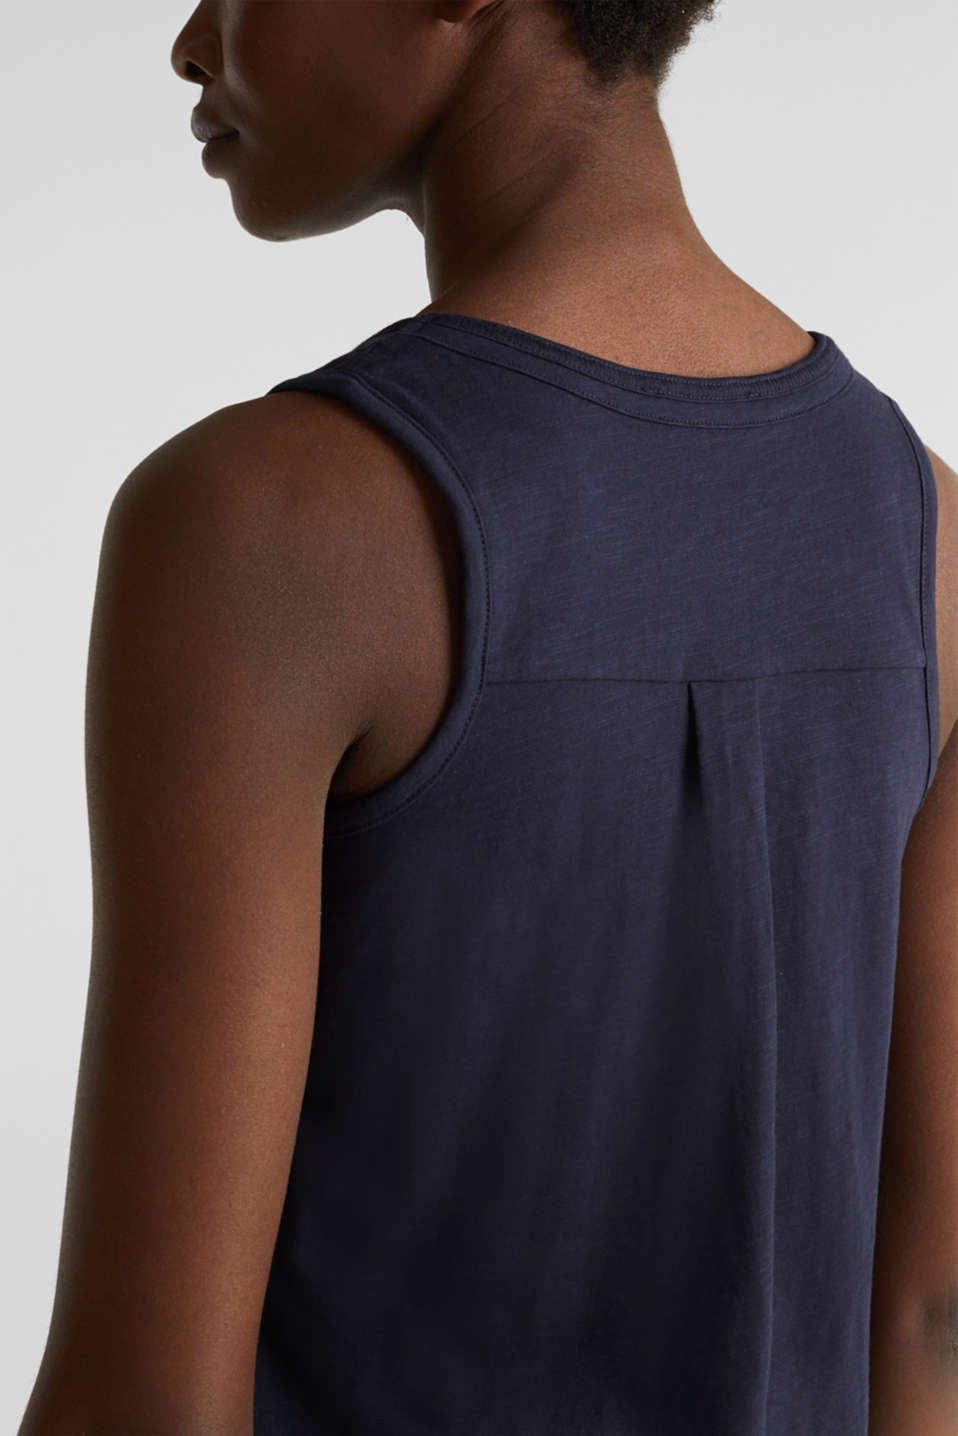 A-line sleeveless top made of 100% organic cotton, NAVY, detail image number 5